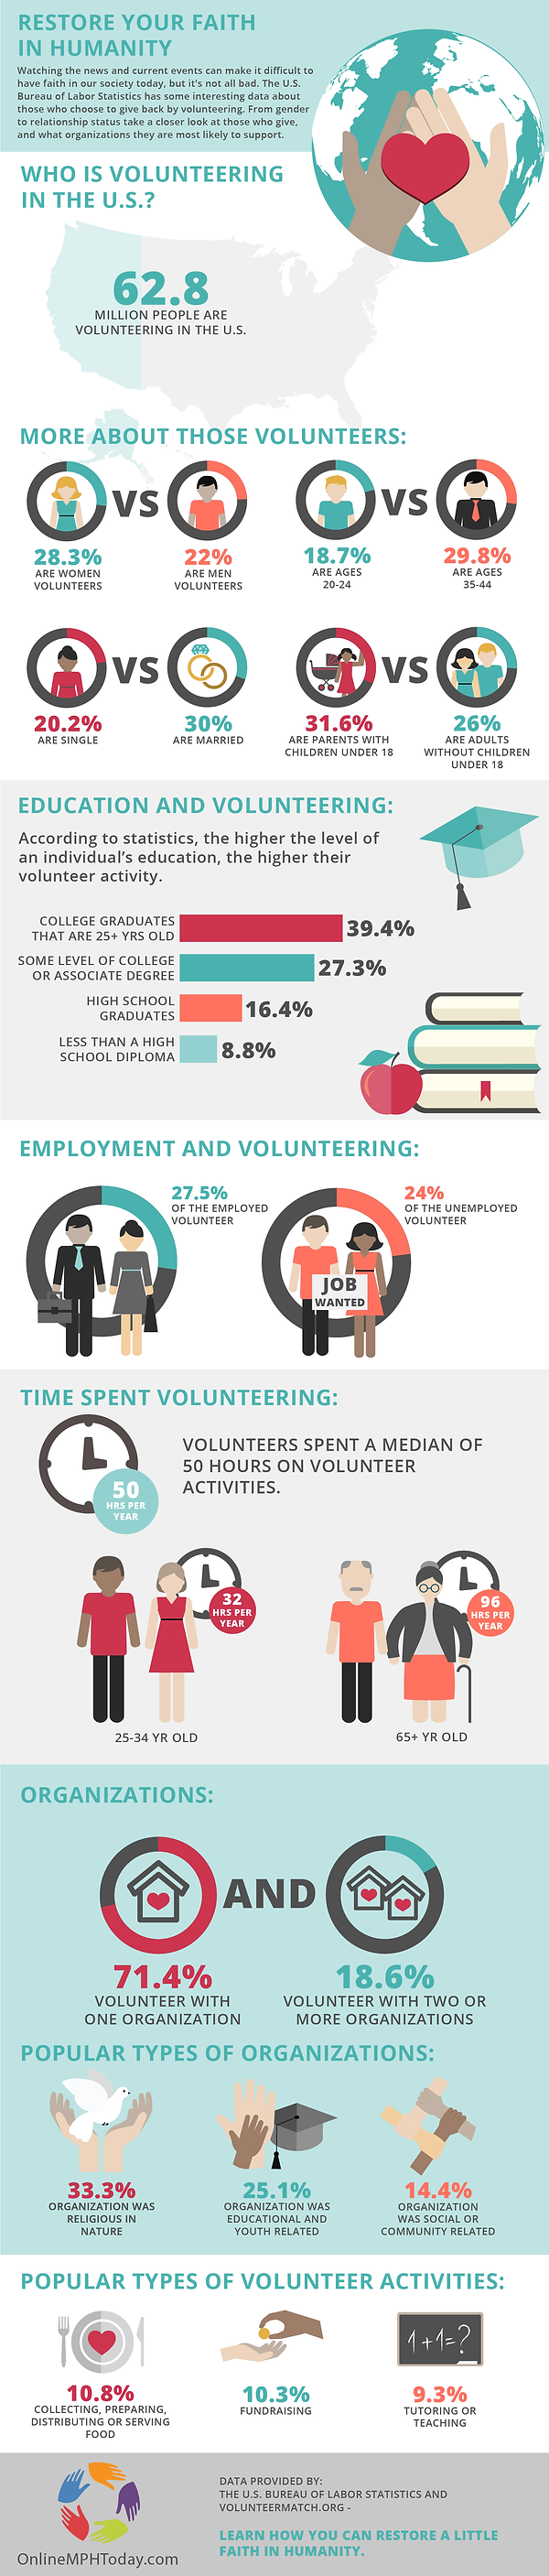 VolunteerStats_Infographic.png